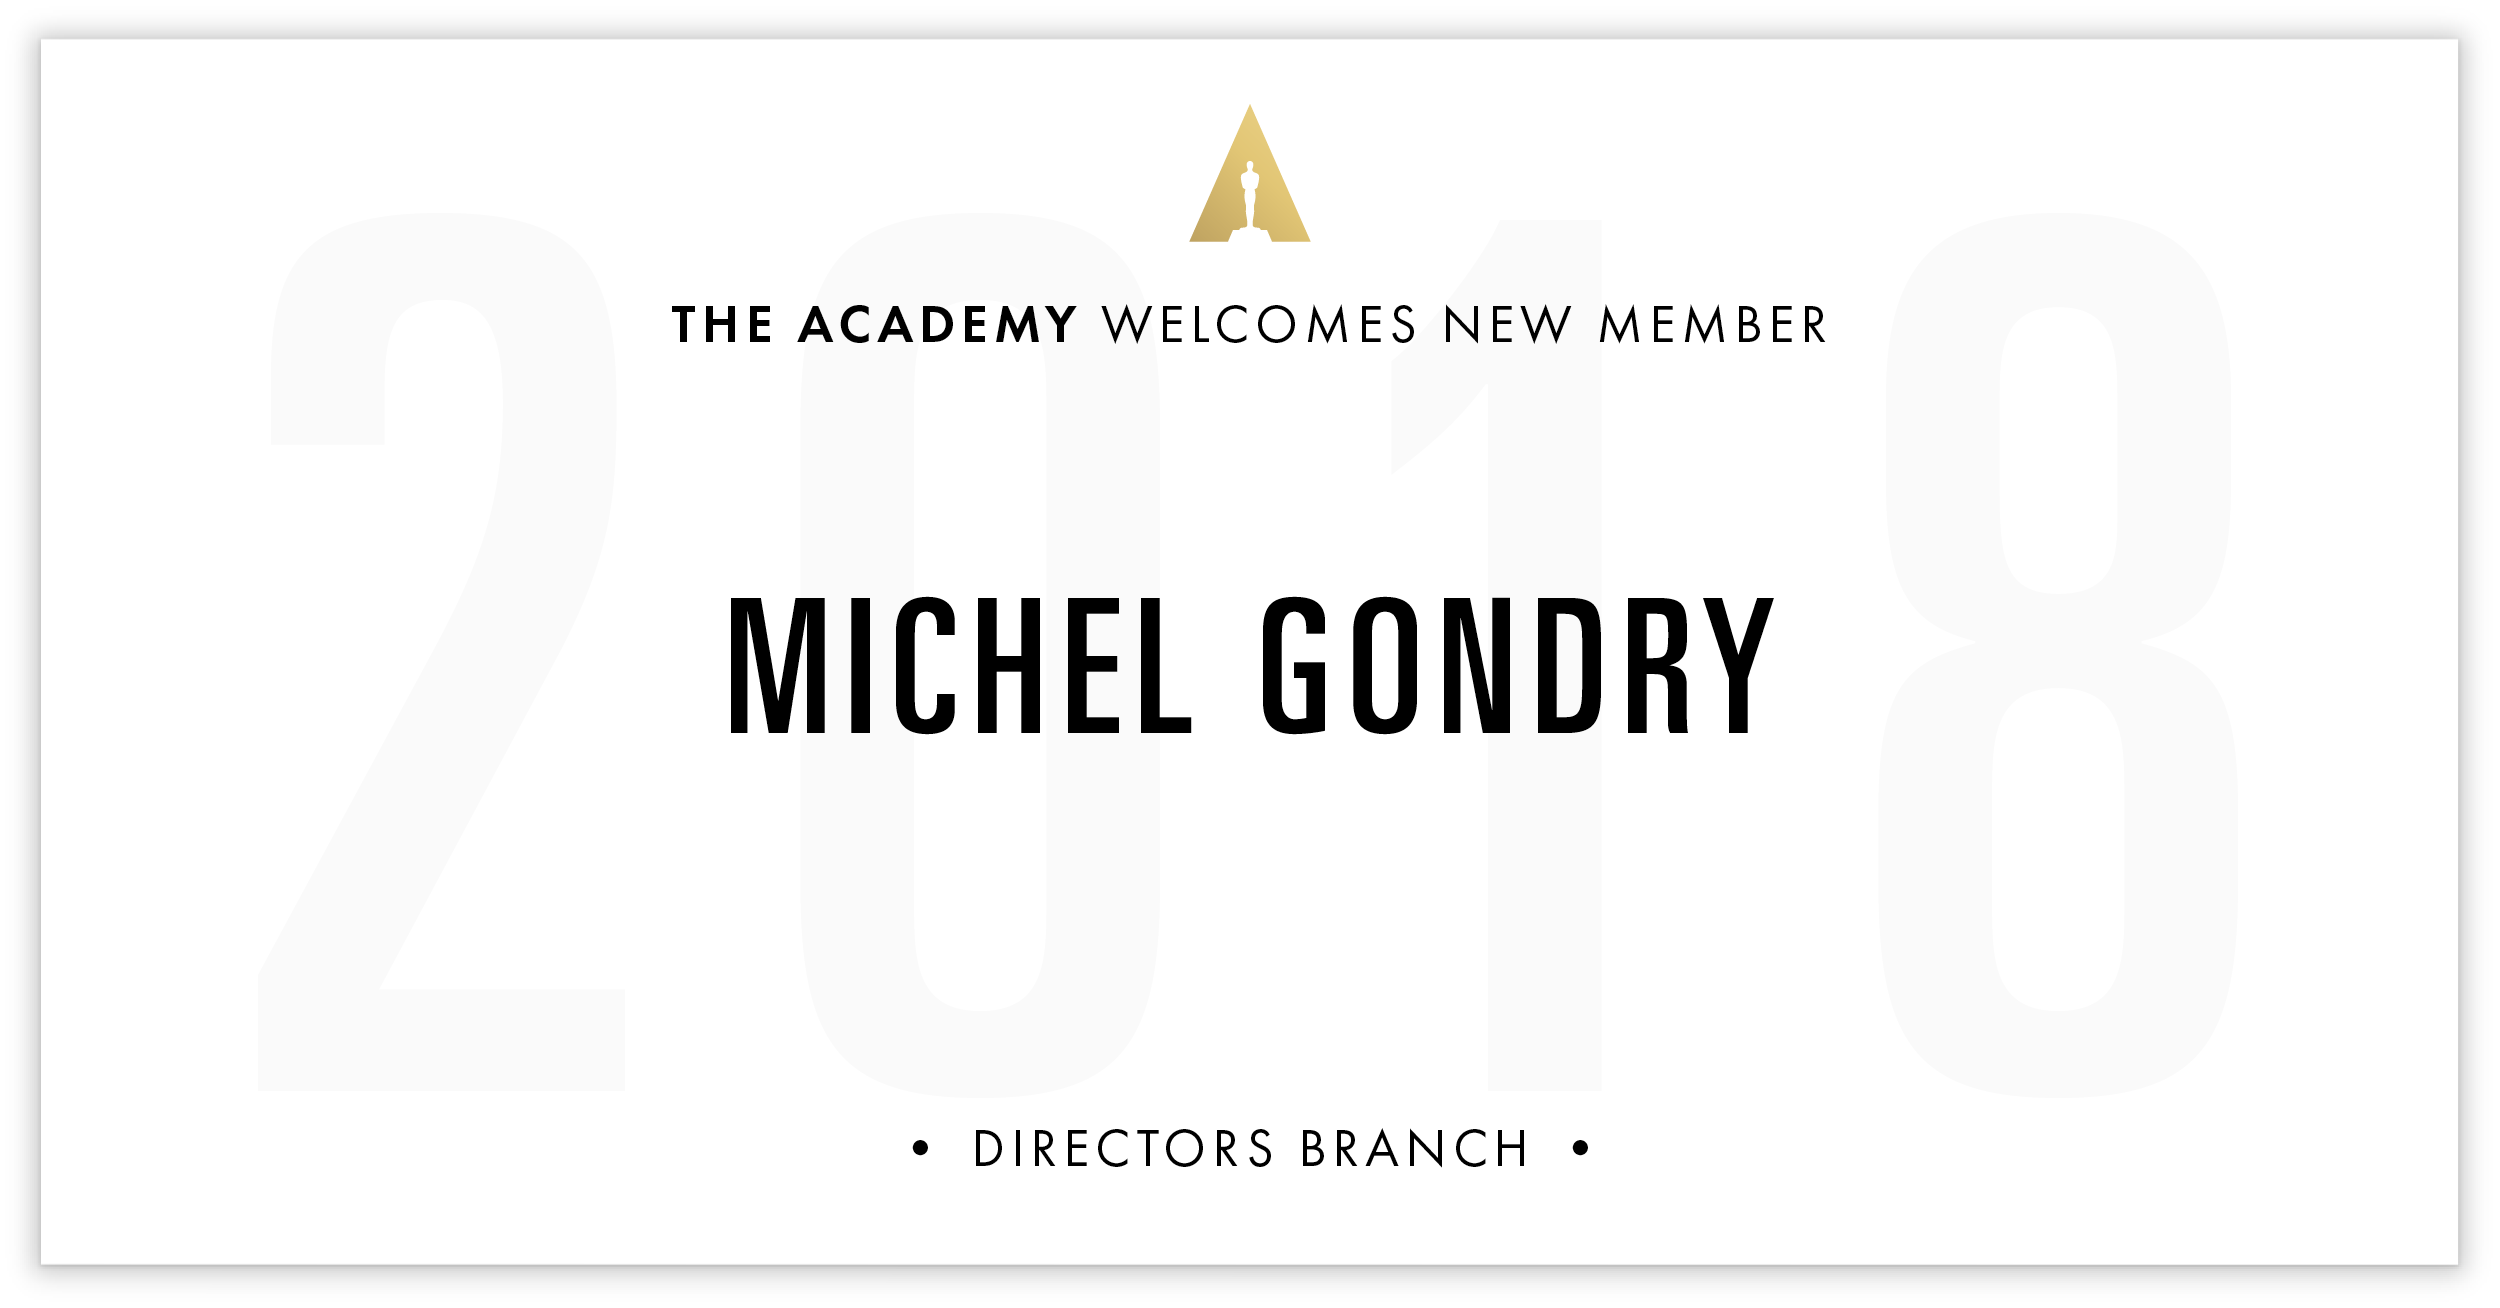 Michel Gondry is invited!